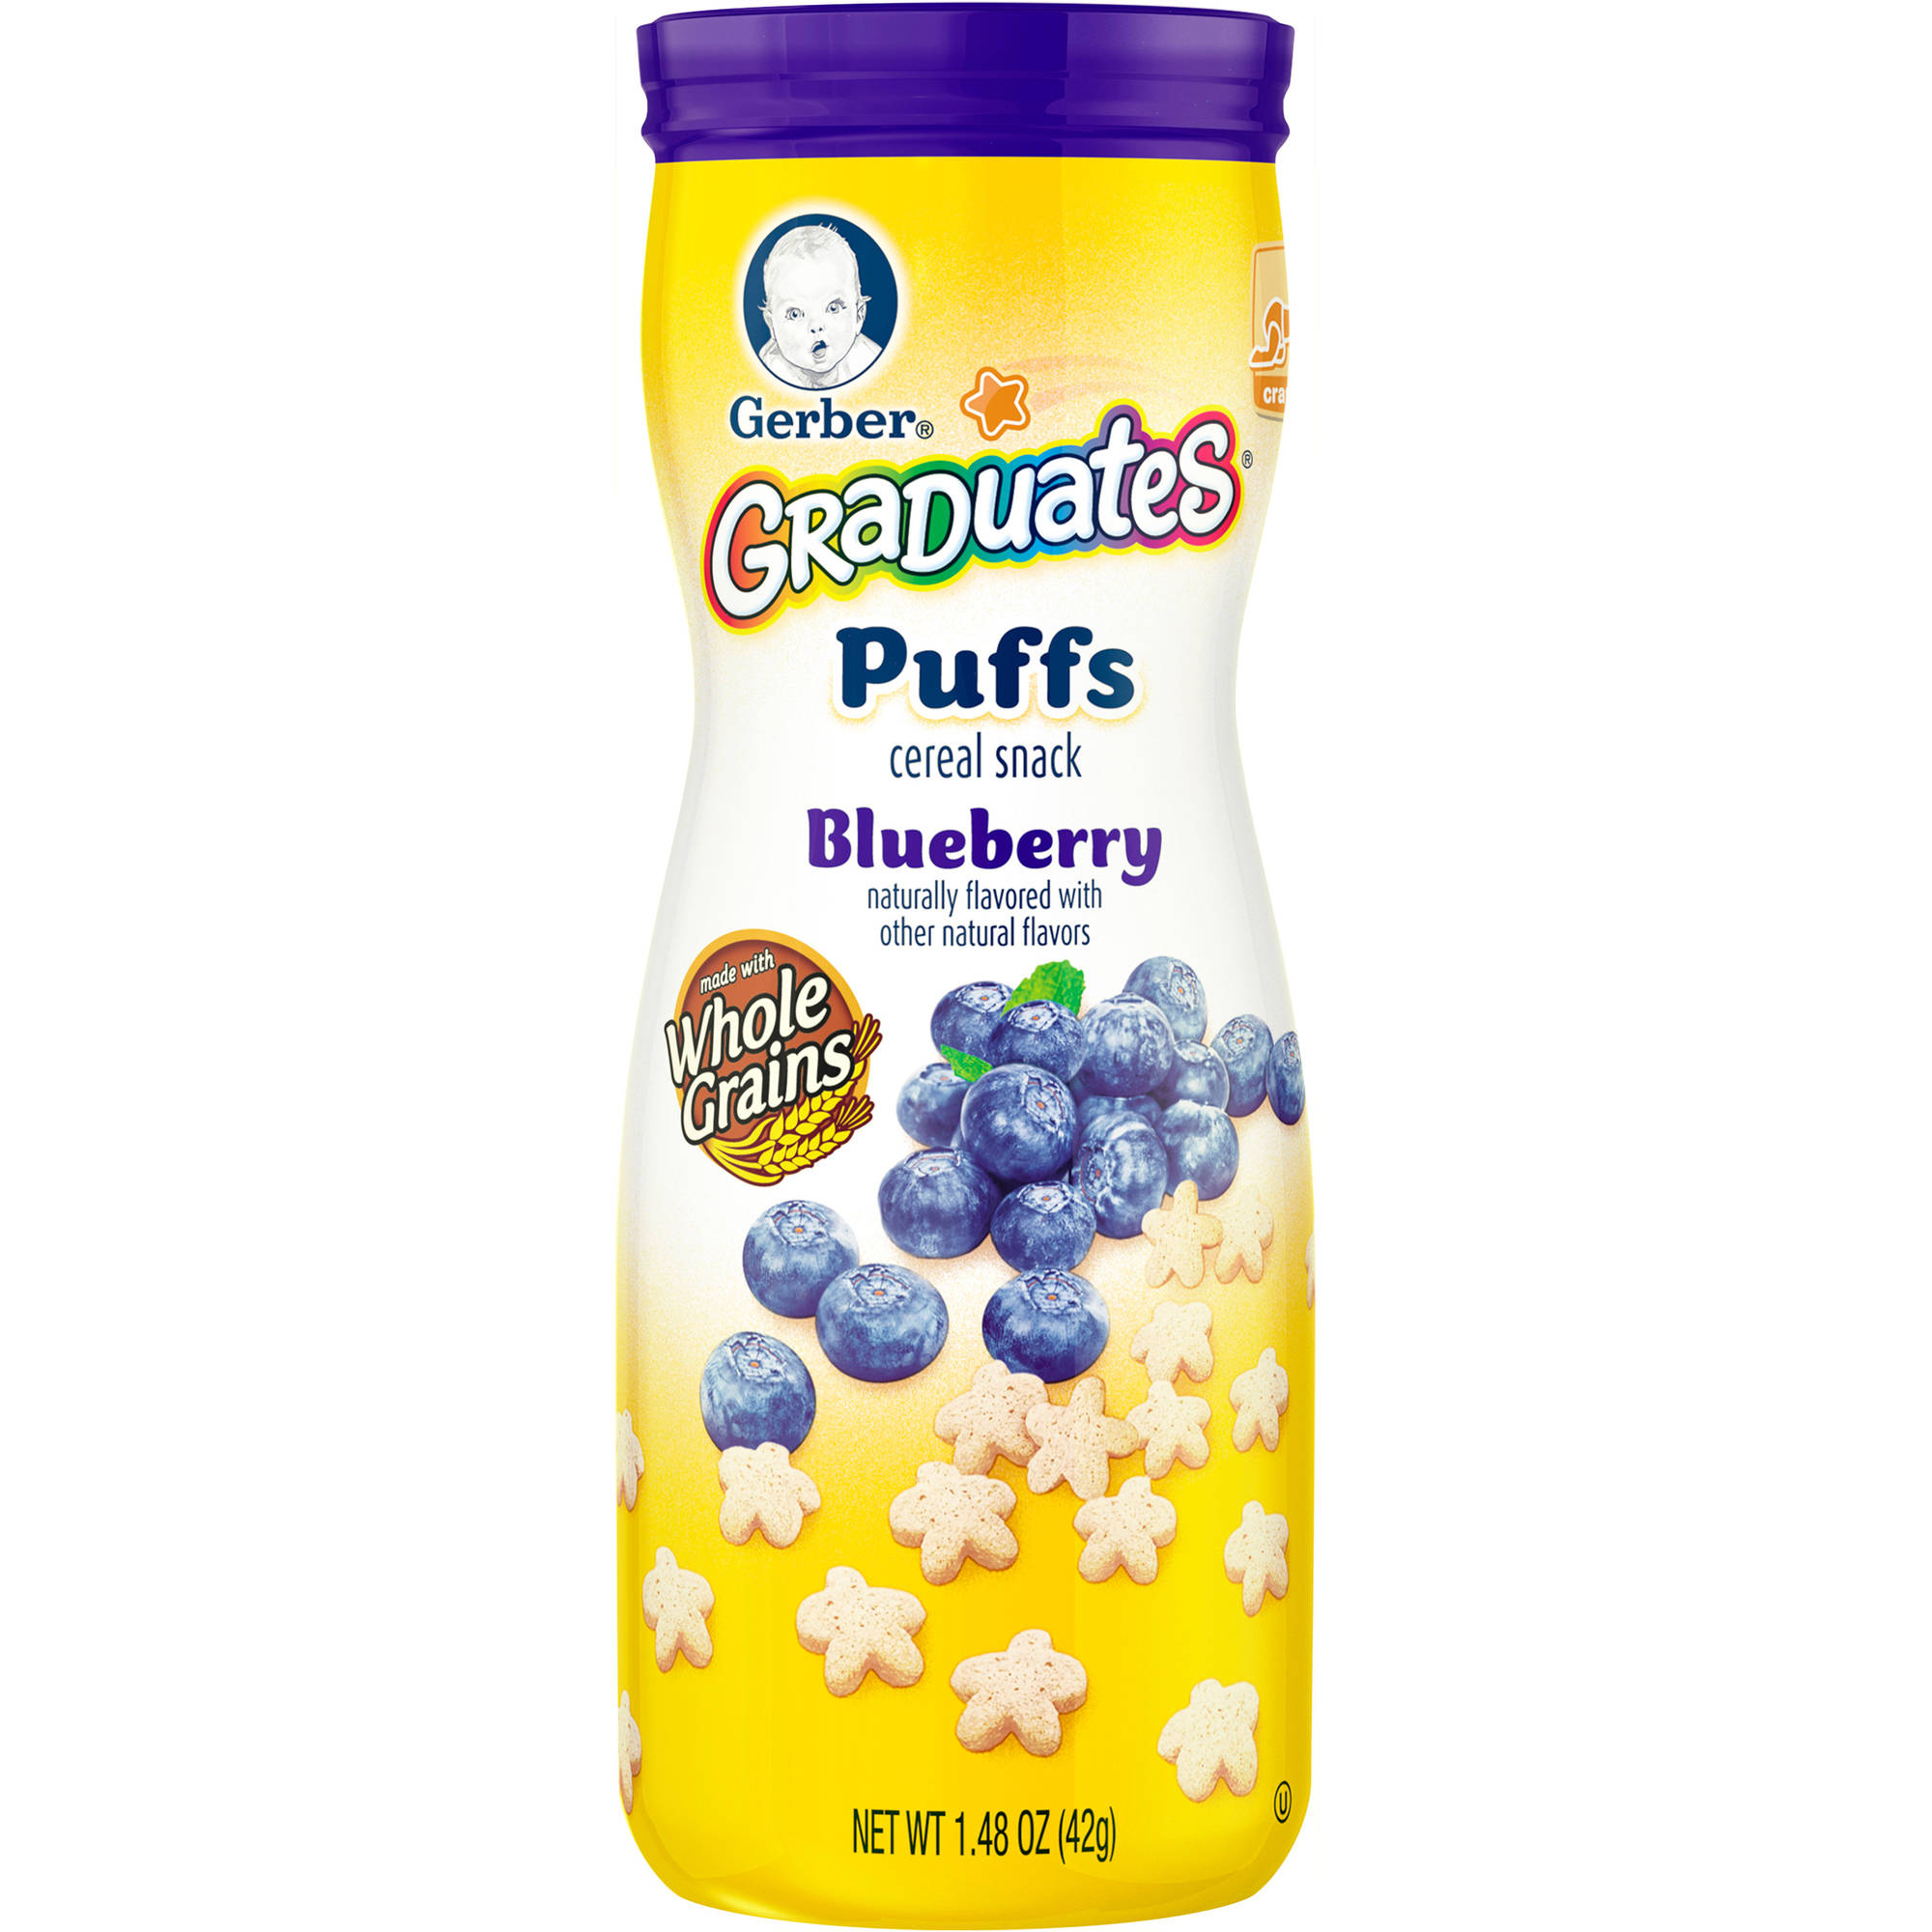 Gerber® Graduates® Puffs Blueberry Cereal Snack, 1.48 oz